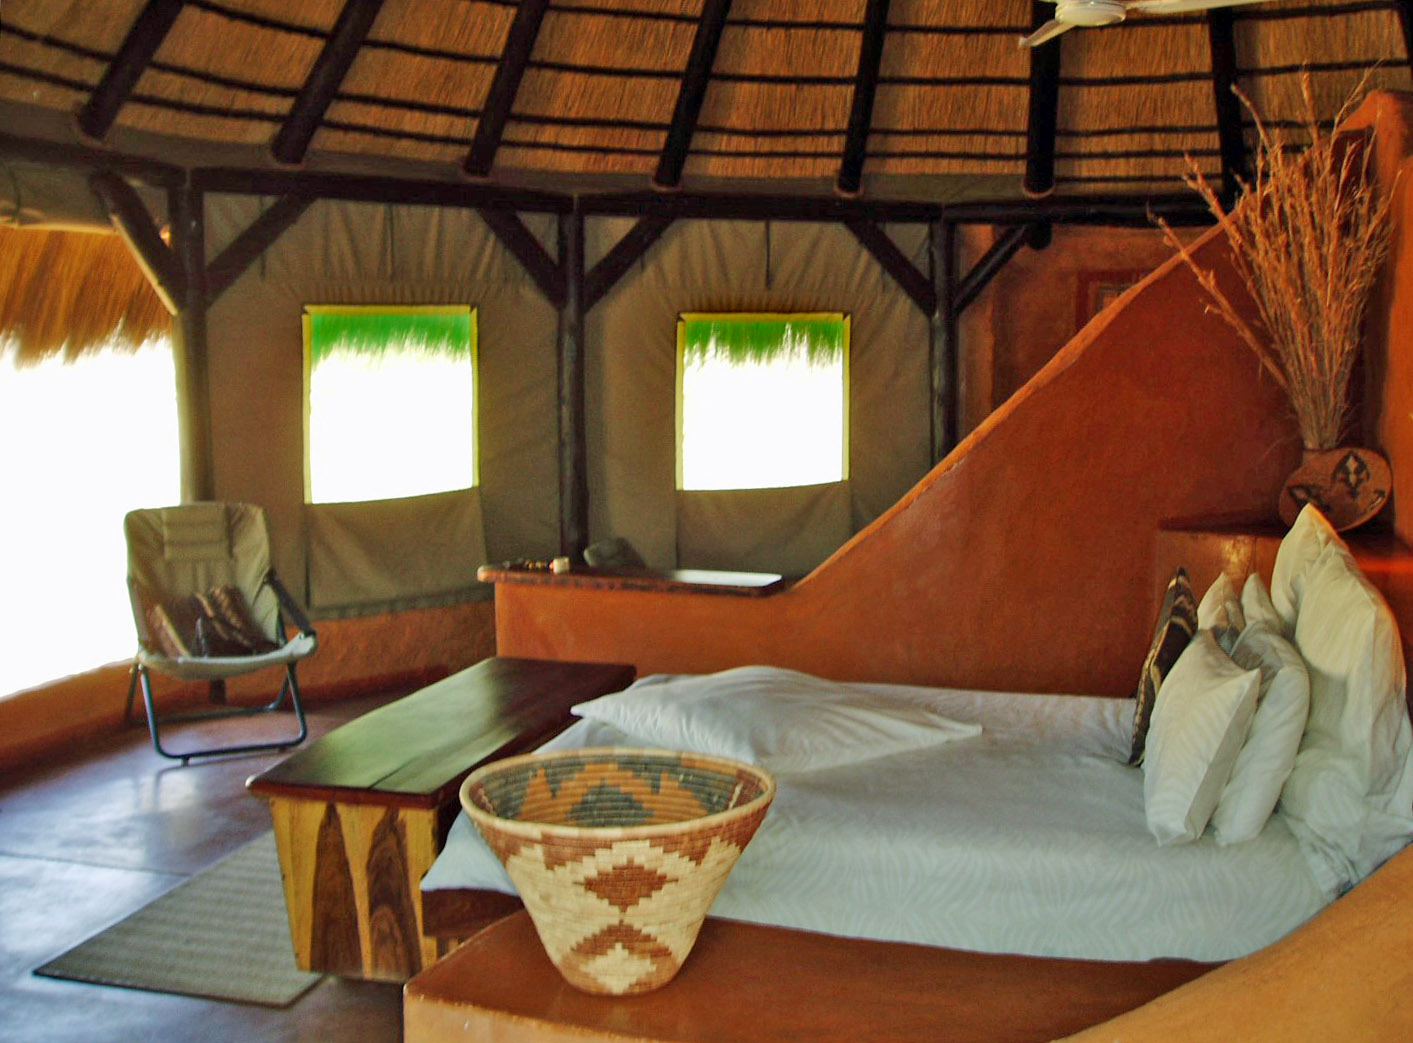 Bed in round adobe room with canvas walls